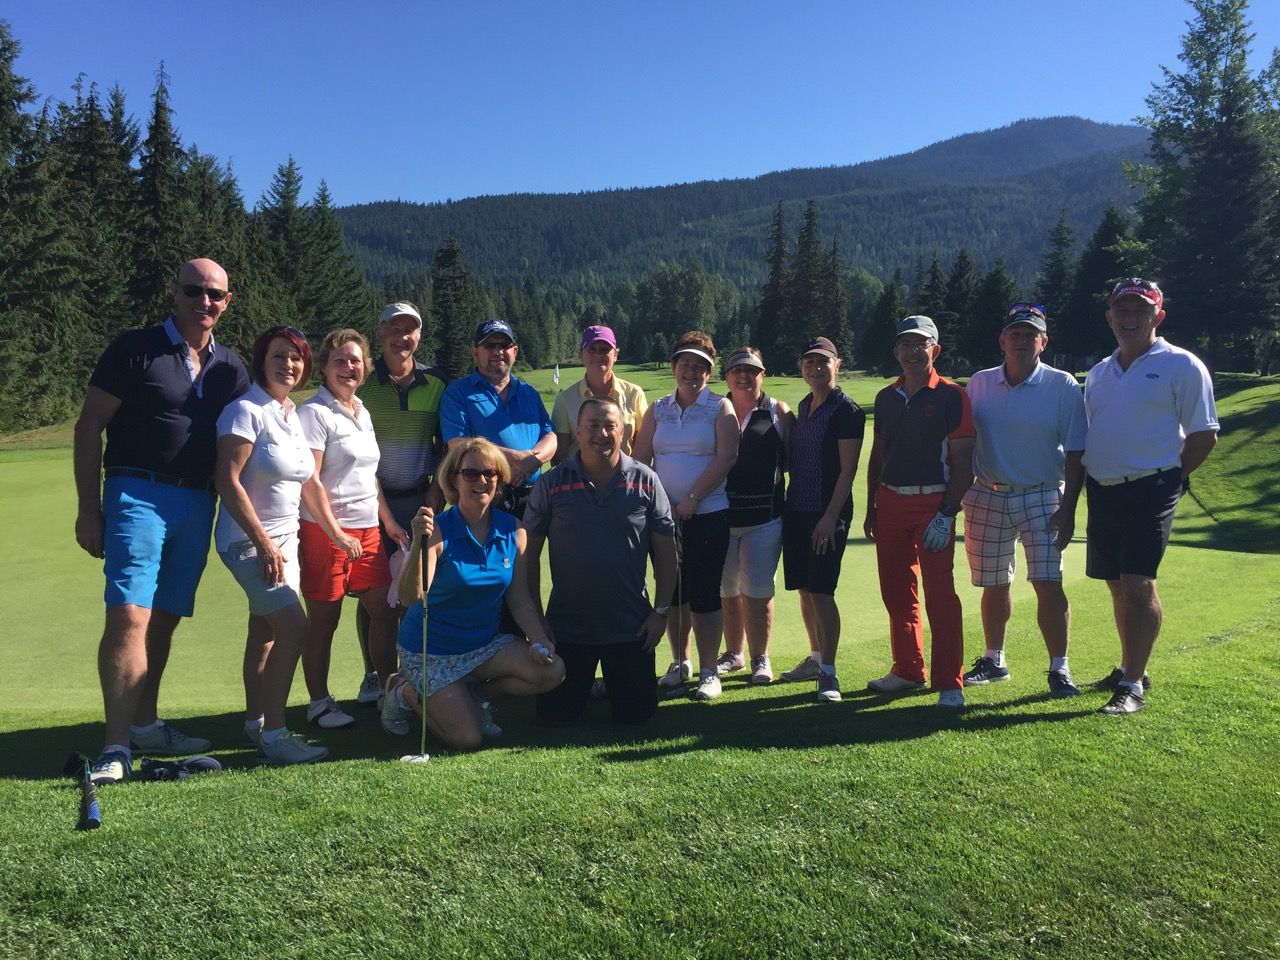 Group photo at Chateau Whistler GC